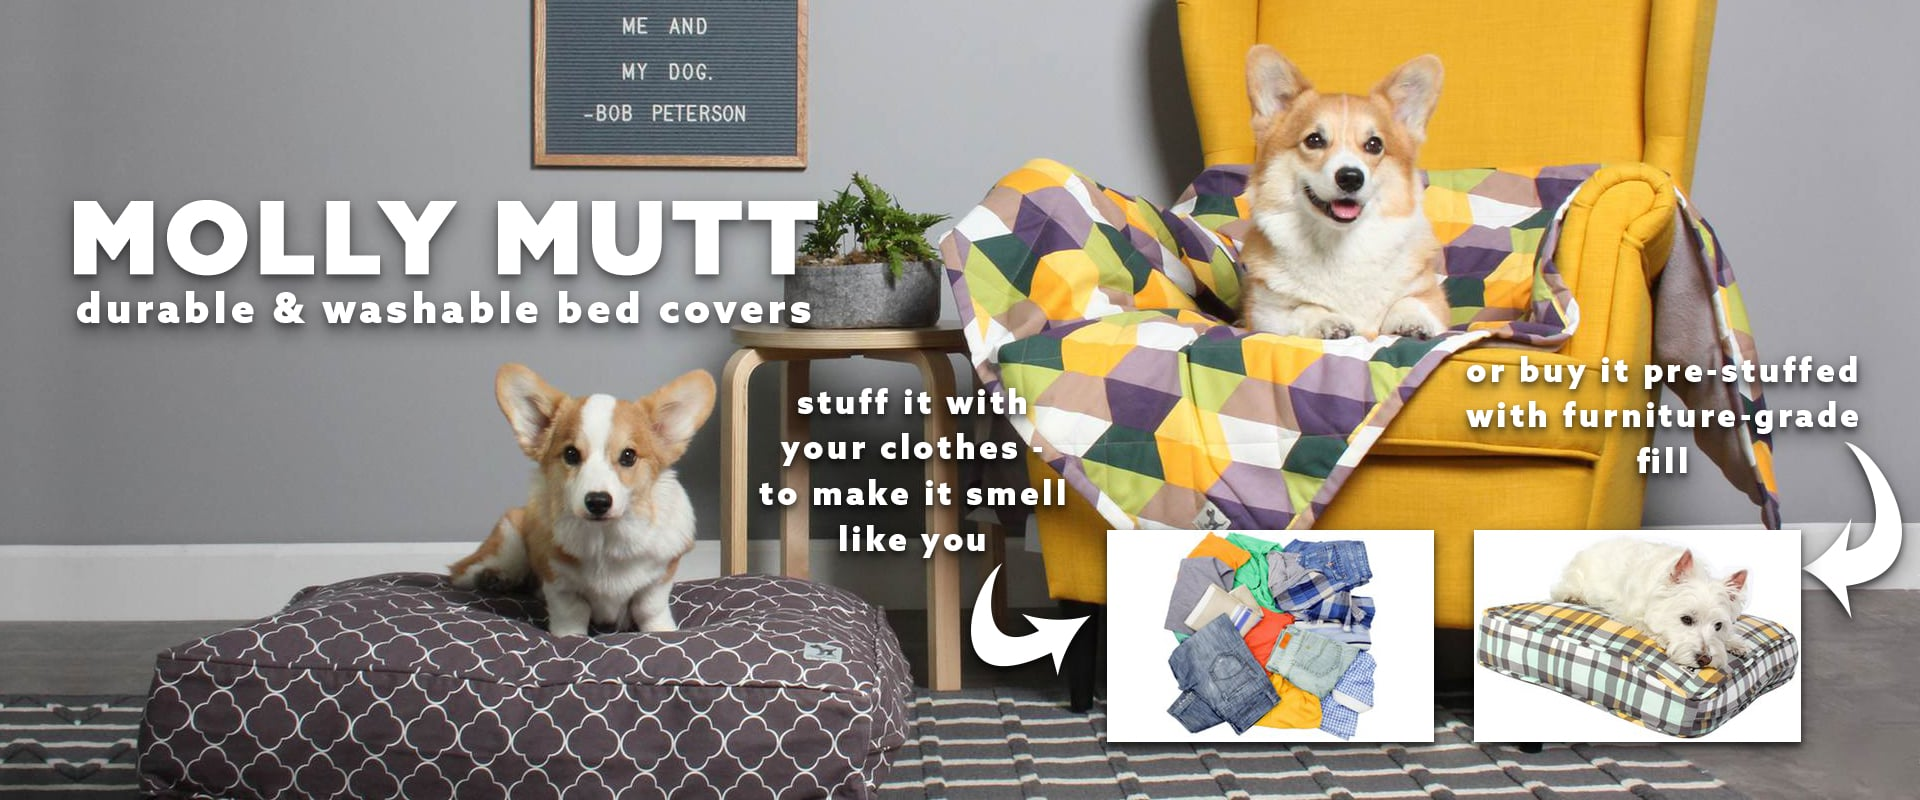 DIY Dog Bed, Comfortable, Large